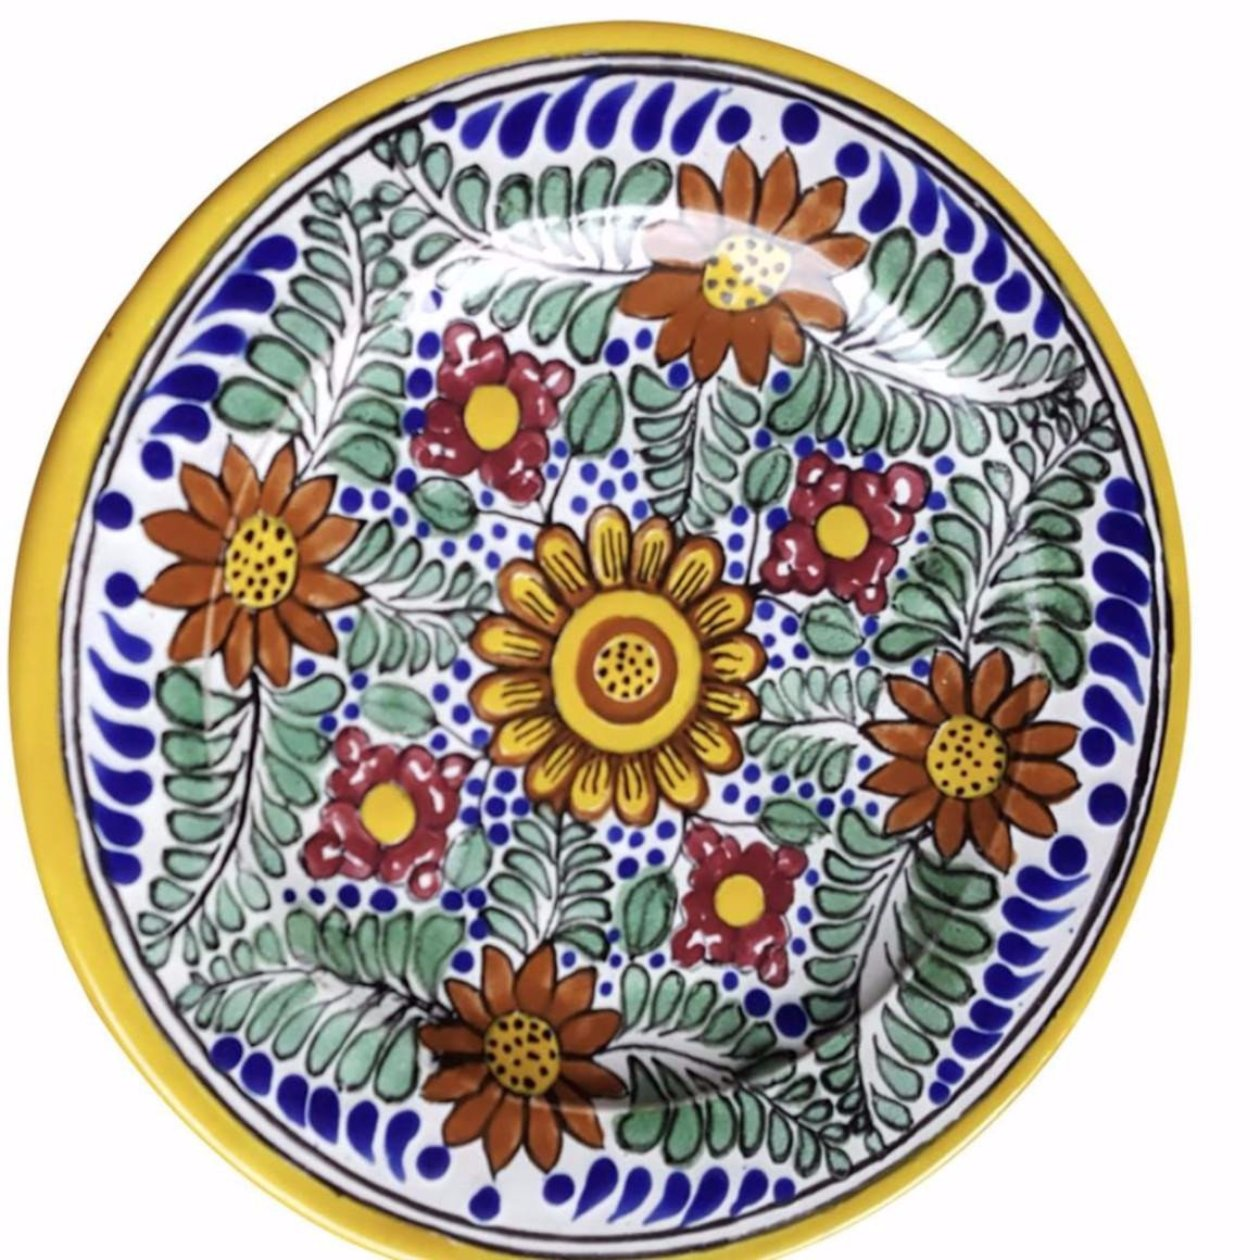 ... Rustica Gift Amapola Collection Mexican Talavera Pottery Dinner plate evocative of Italian Pottery ...  sc 1 st  Rustica Gift \u0026 Talavera Pottery & Amapola Mexican Talavera Pottery Dinner Plate | Rustica Gift